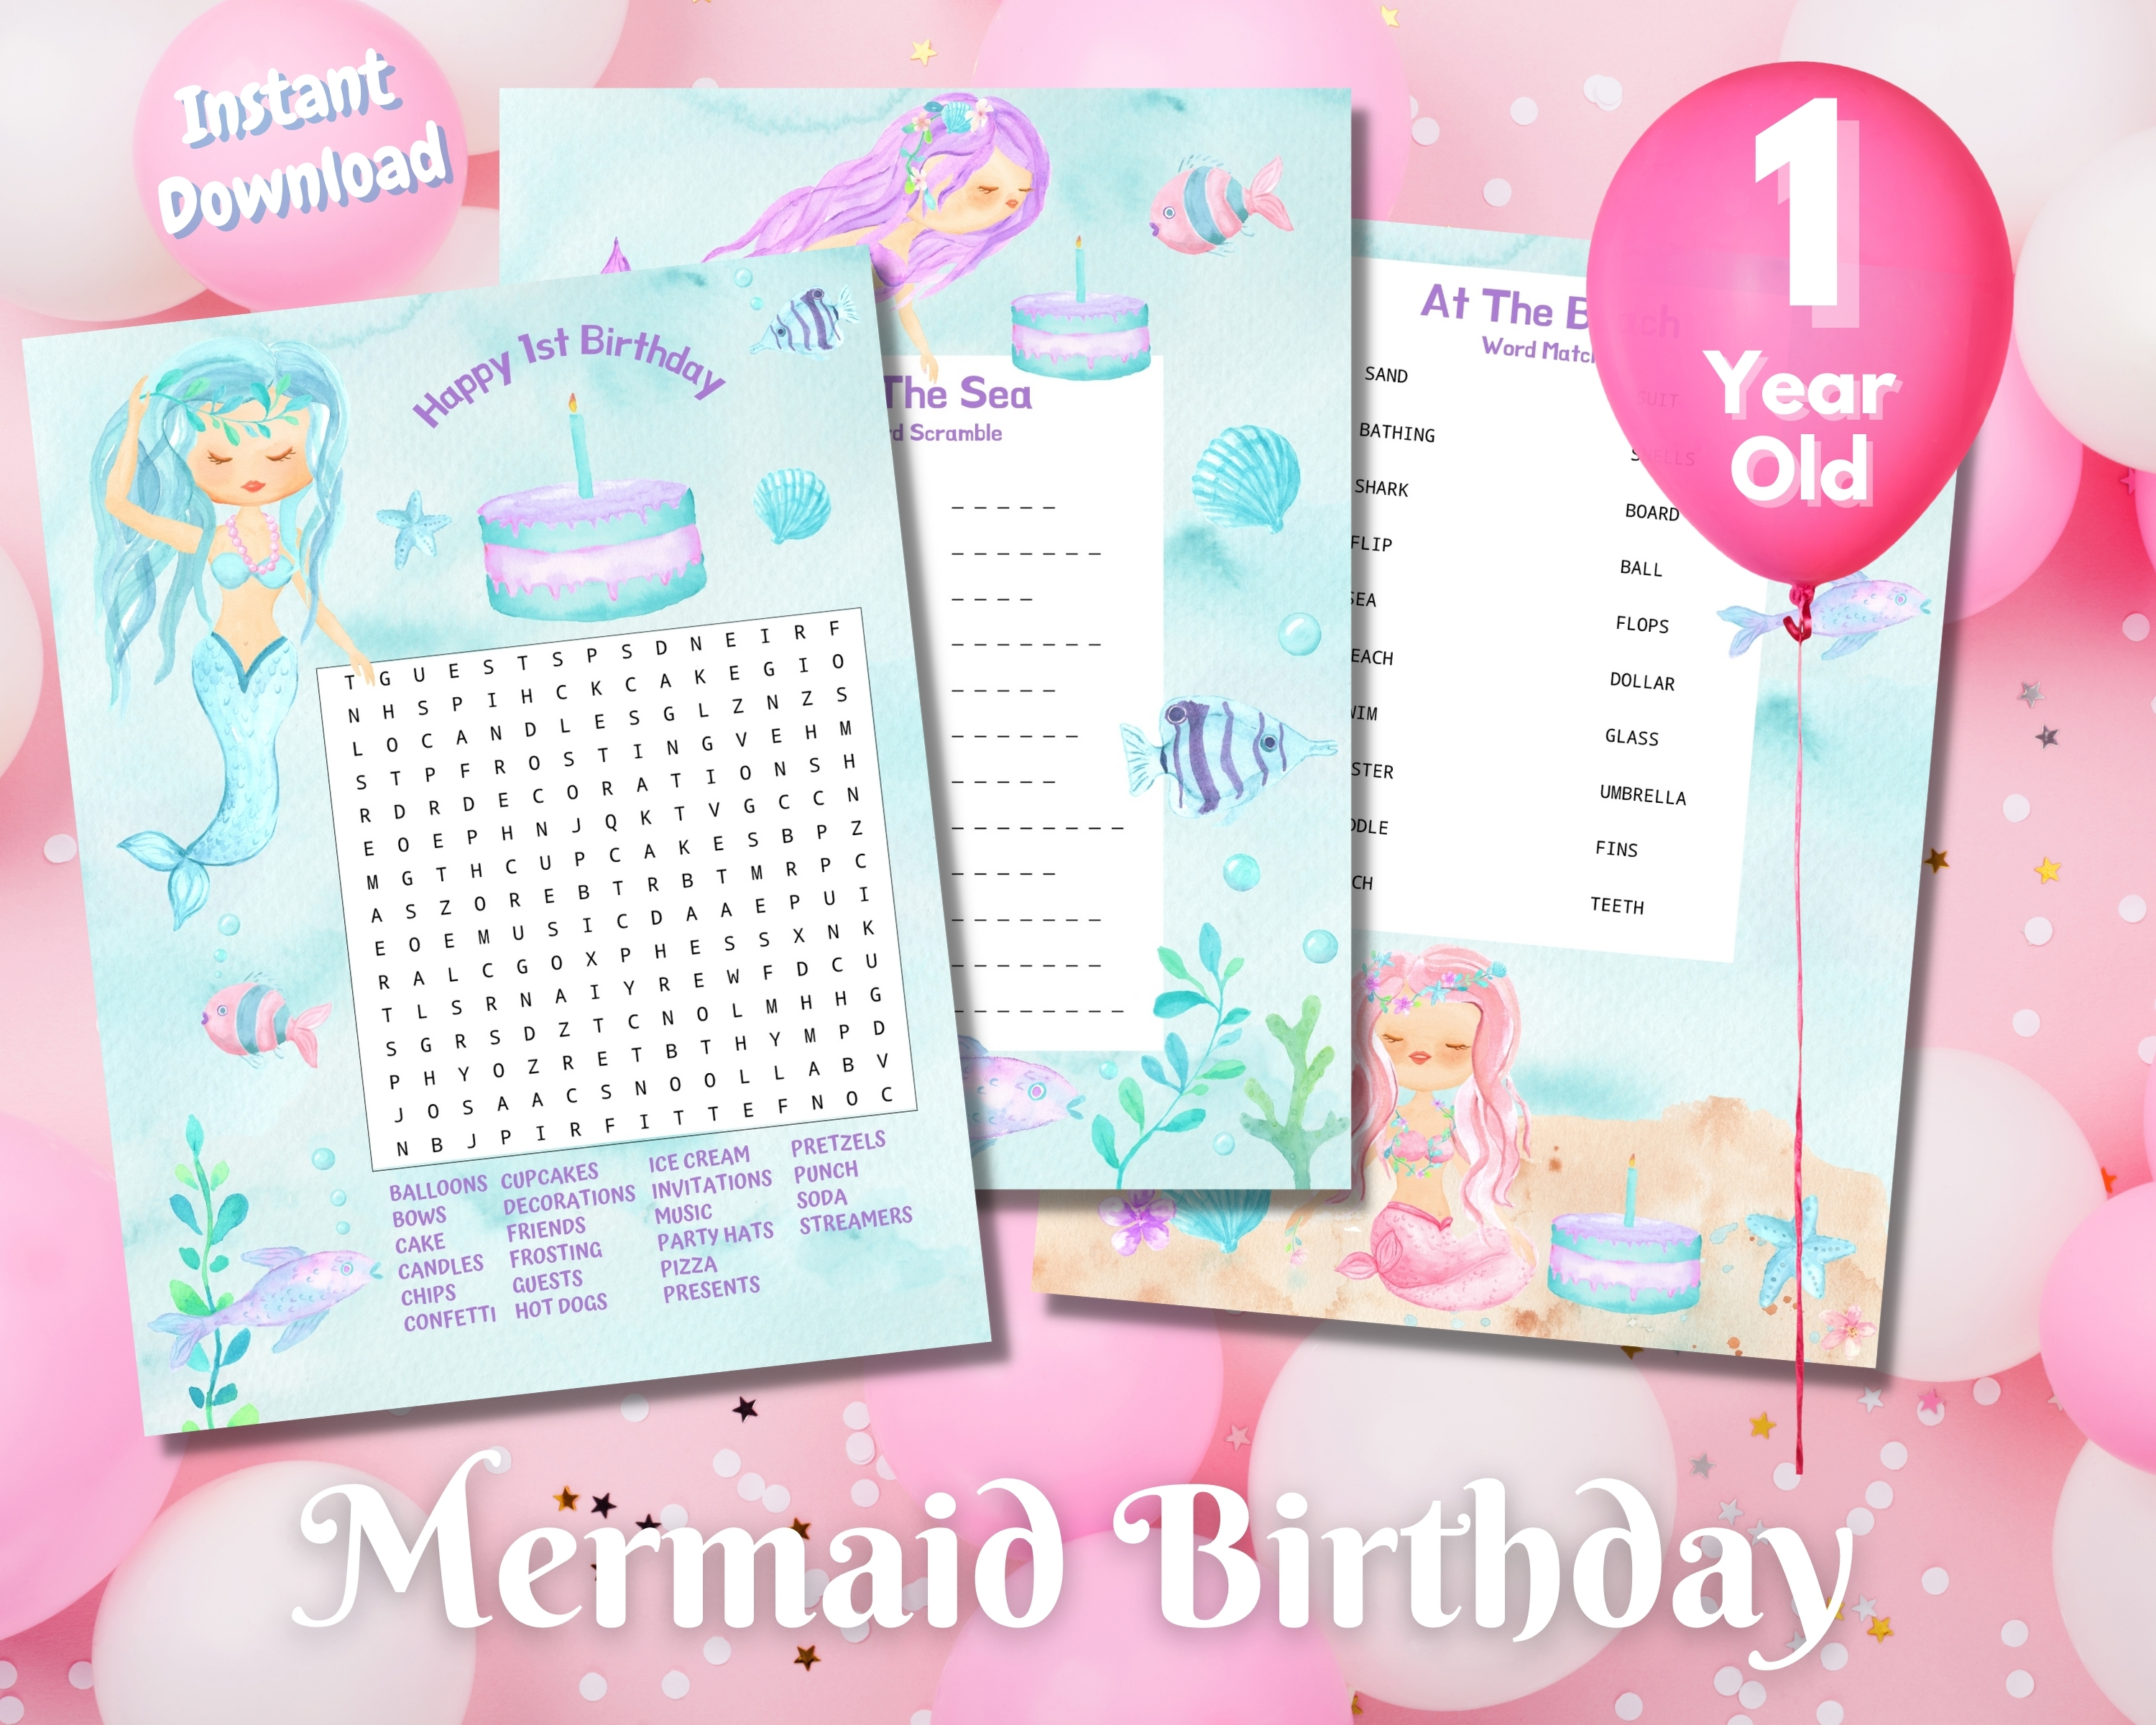 First Mermaid Birthday Word Puzzles - Light Complexion